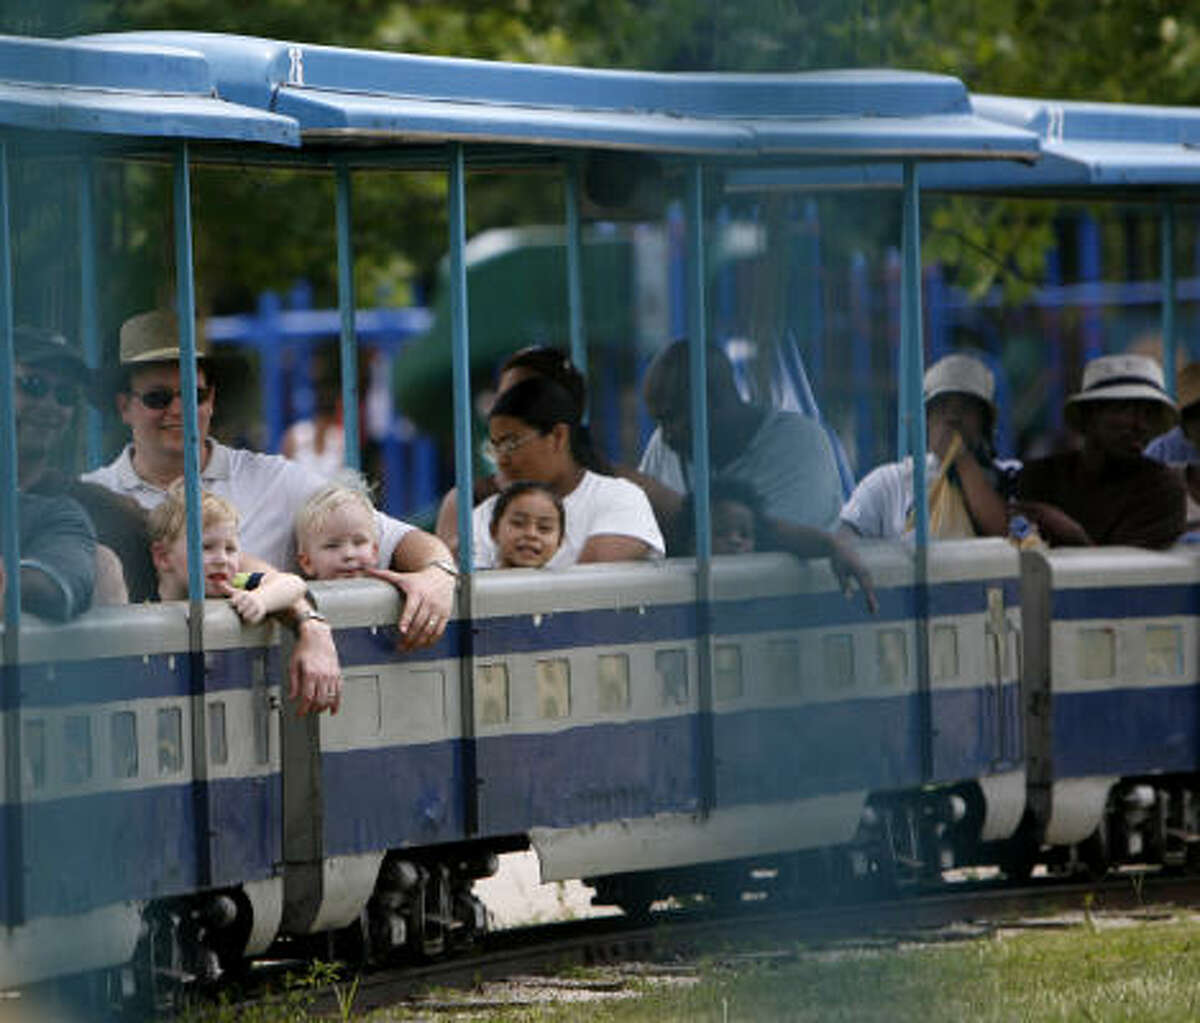 Drew Keady, 4, left, and his cousin, Carter Jones, 2, right, ride the train on Saturday.